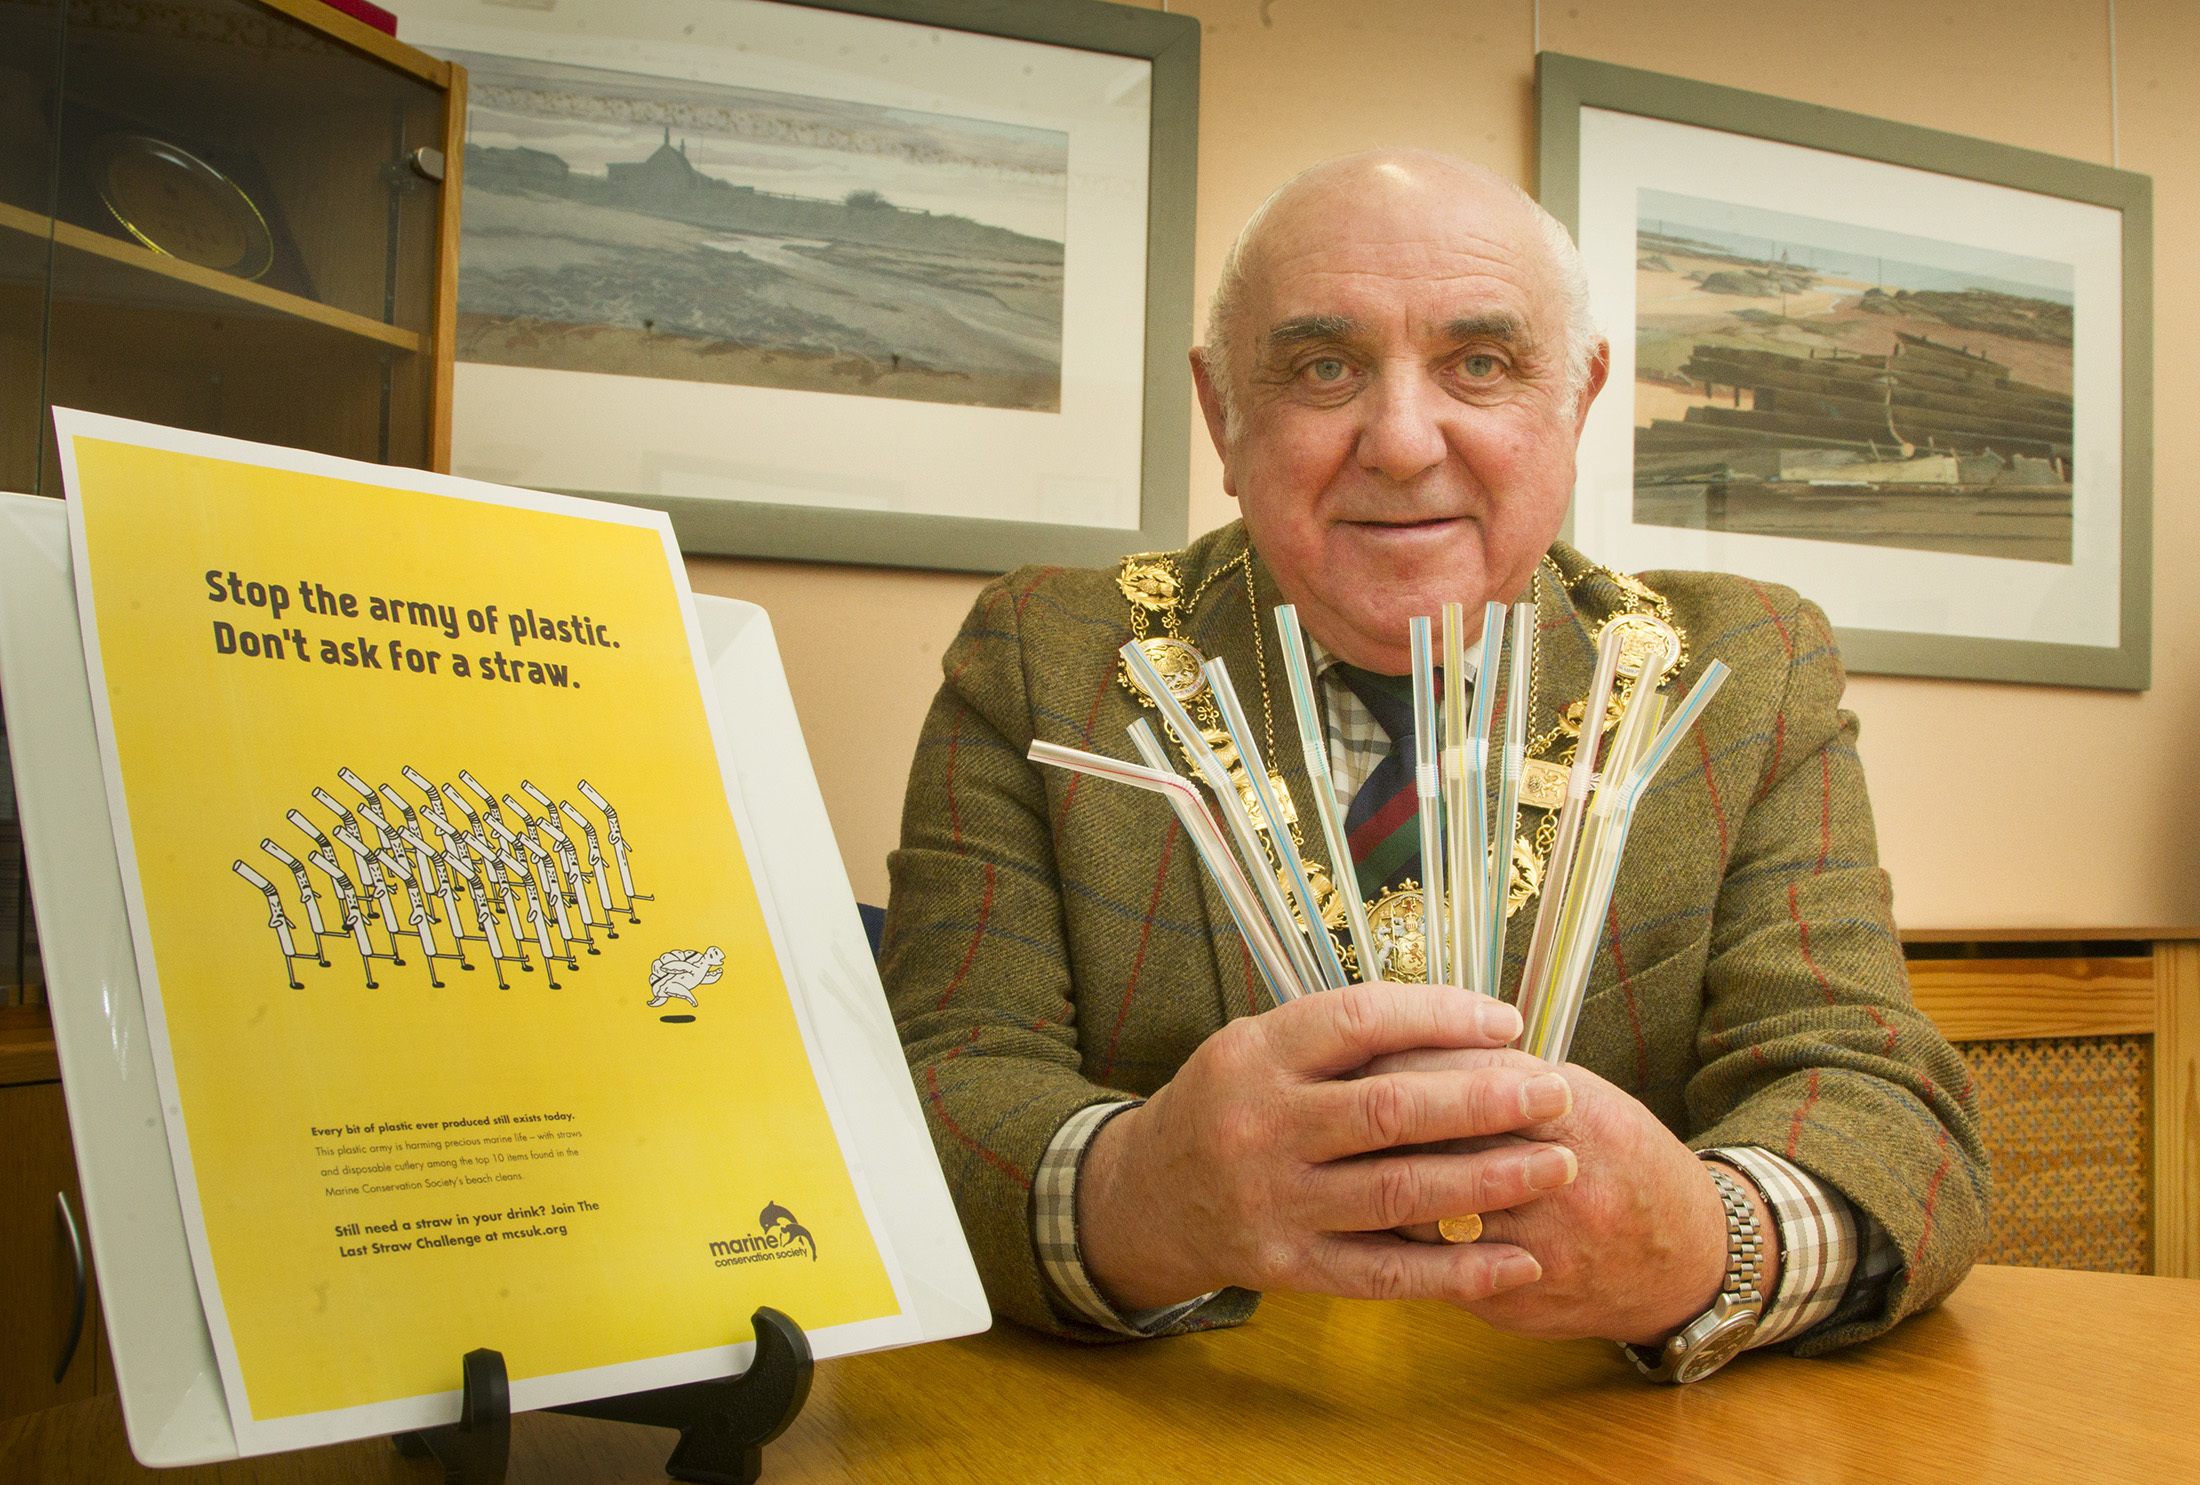 Angus Provost Ronnie Proctor calls for an end to the use of plastic straws.